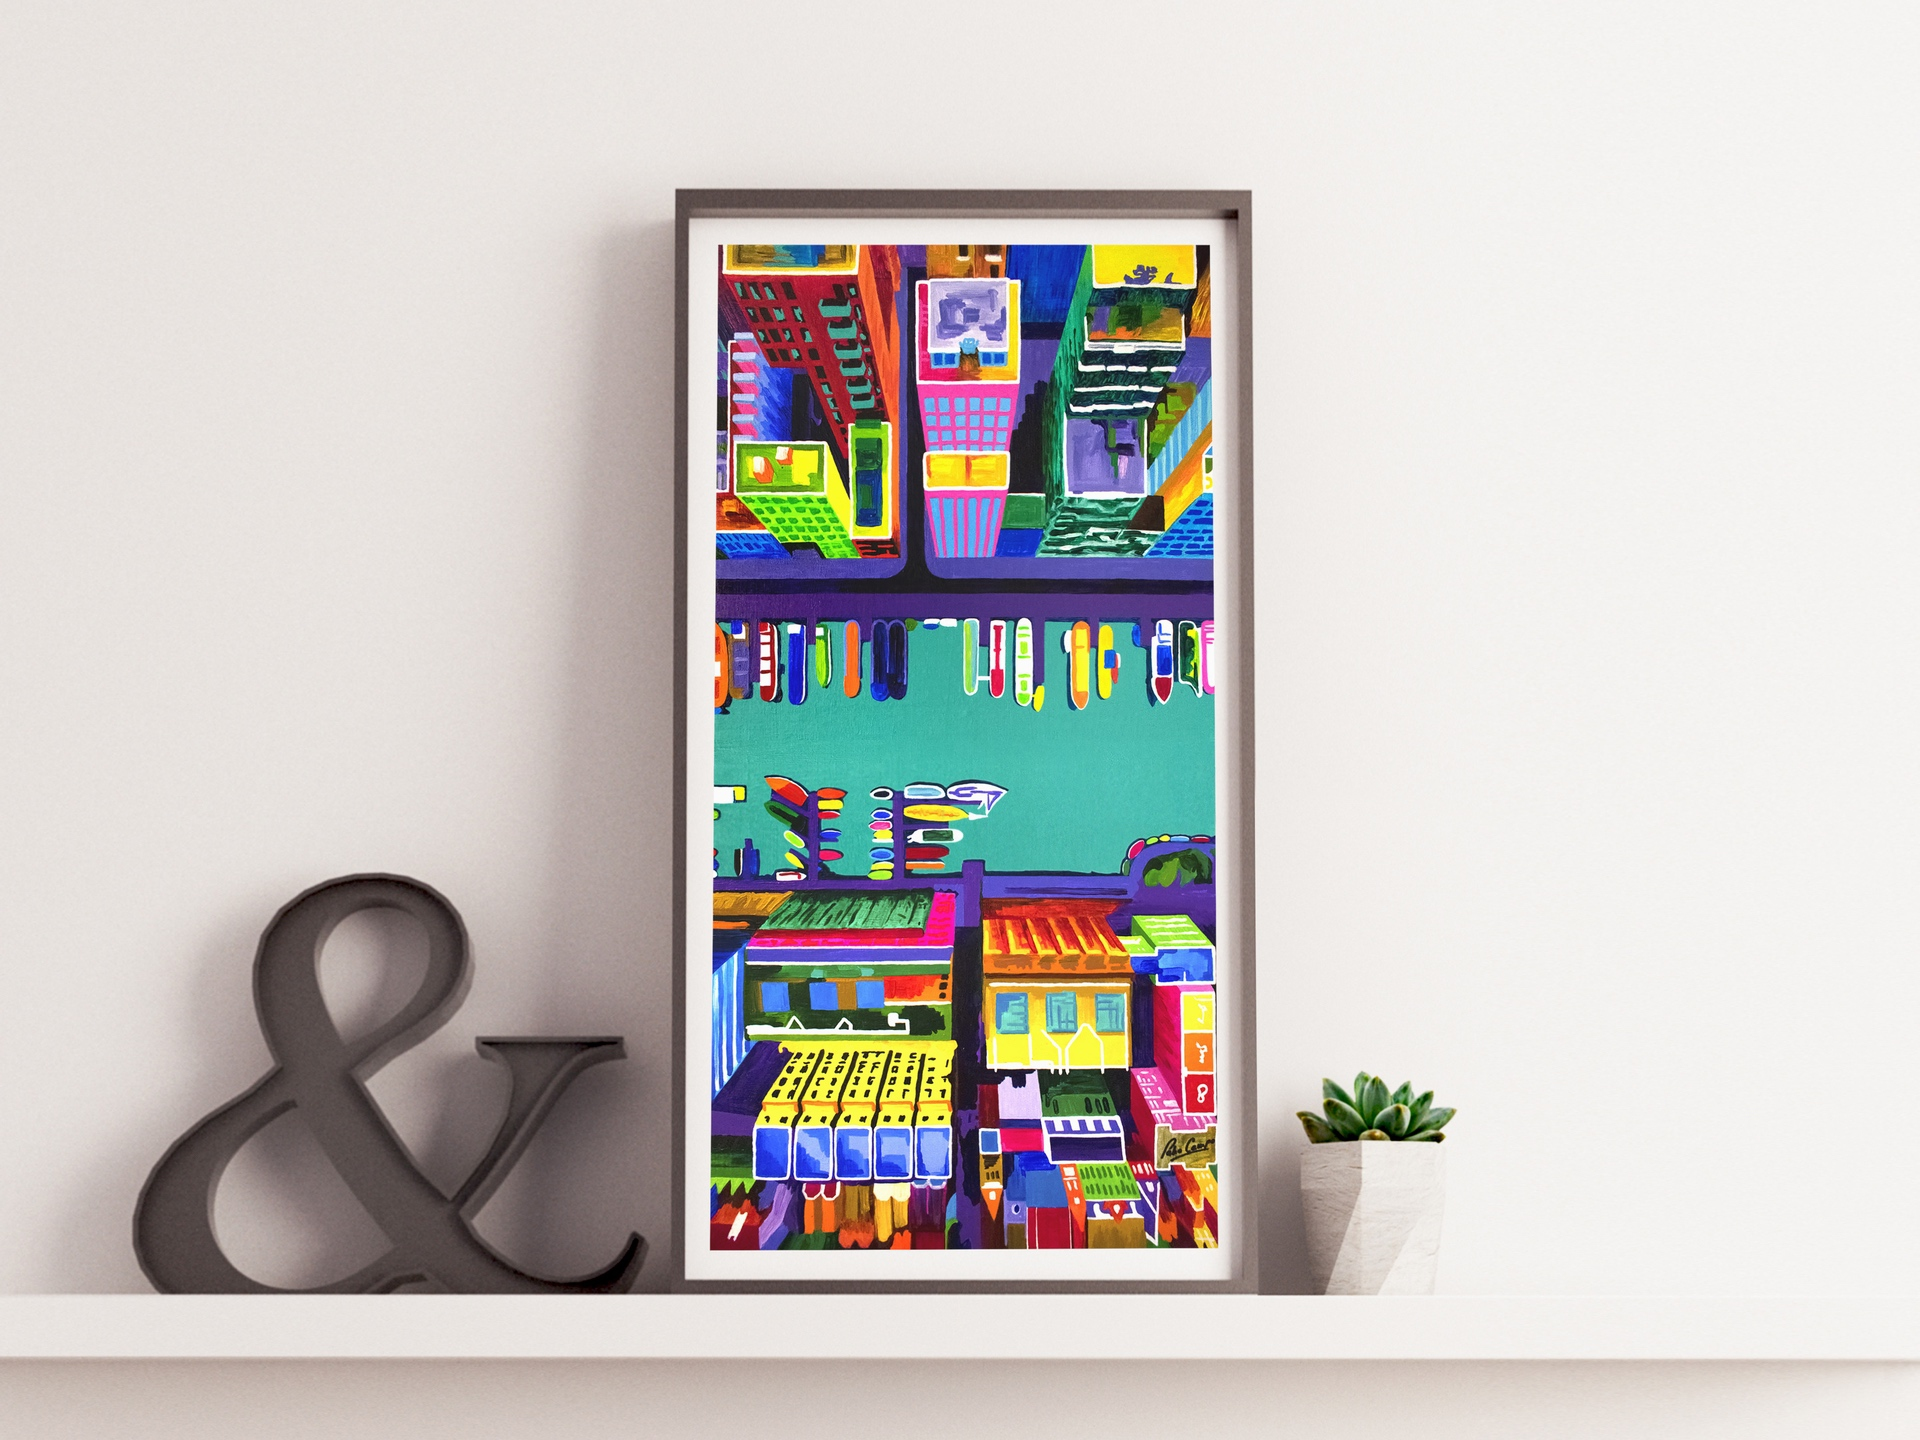 Westerdok - Limited edition giclée print by Pako Campo